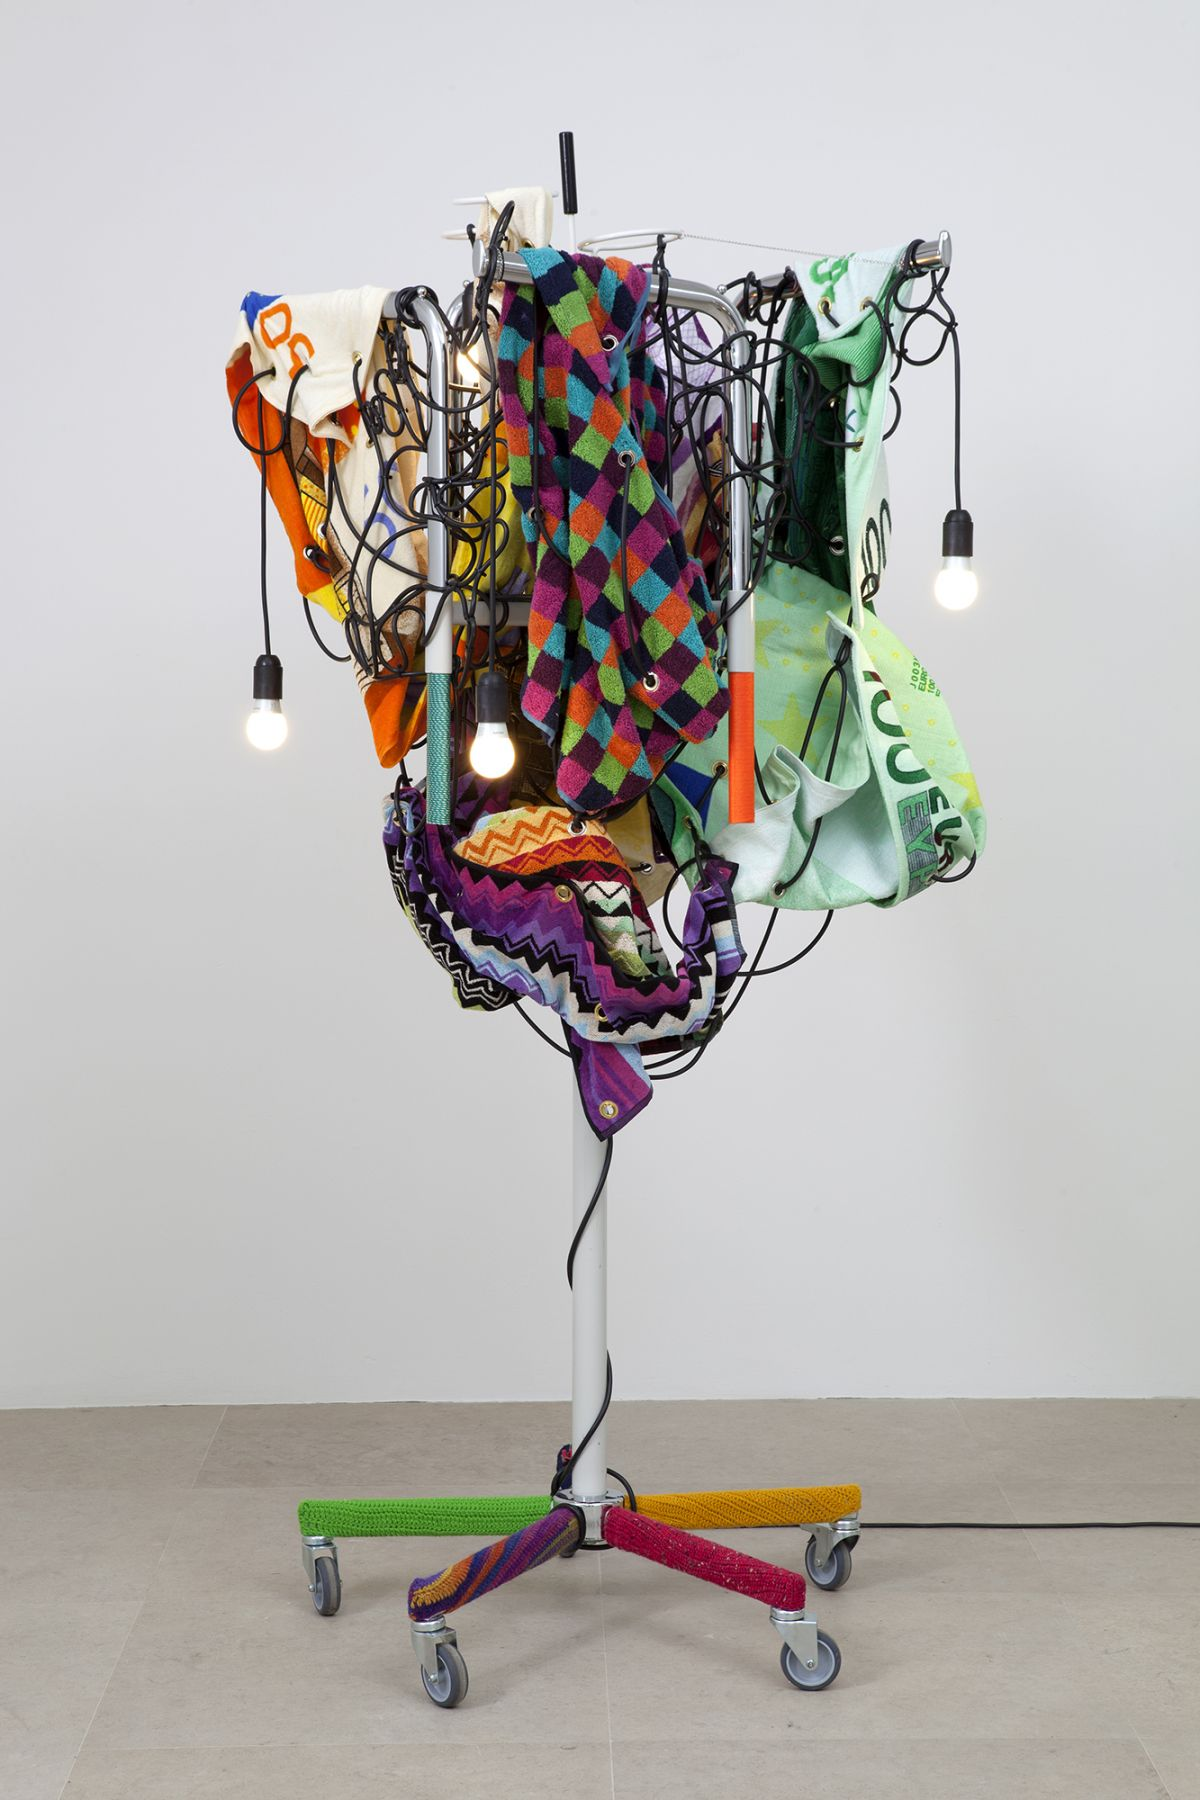 Haegue Yang Towel Light Sculpture - Budget Discipline towards 900 Euro, 2012 Single shaft clothing rack (white, chrome) on casters with 4 arms, light bulbs (frosted), cable, cord, printed towel (Euro and geometric patterns), metal chain, knitting yarn, grommets, umbrella stand 75 5/8 x 34 5/8 x 33 1/2 inches 192 x 88 x 85 cm